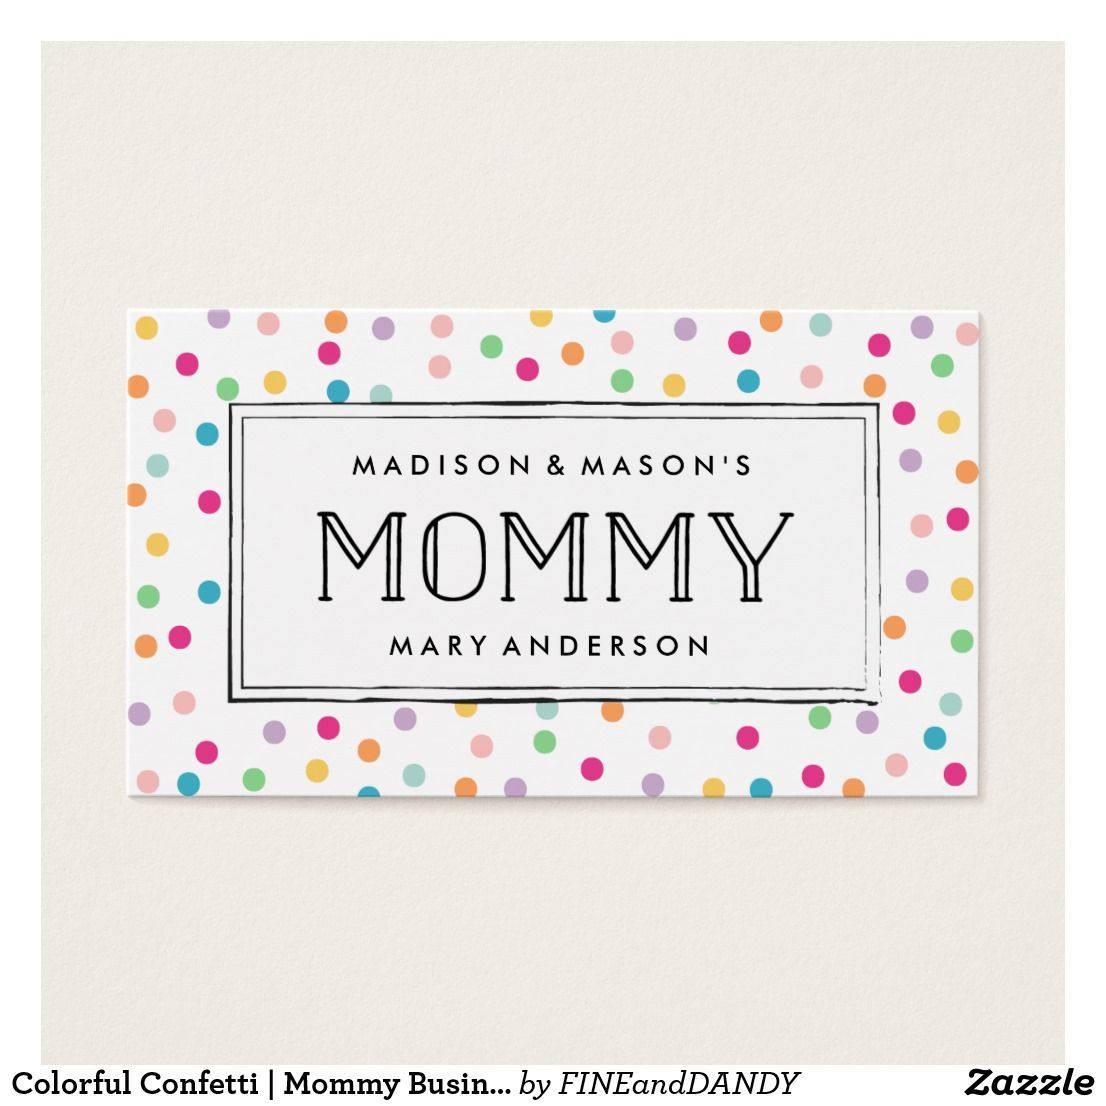 Colorful Confetti | Mommy Business Cards | Business | Pinterest ...